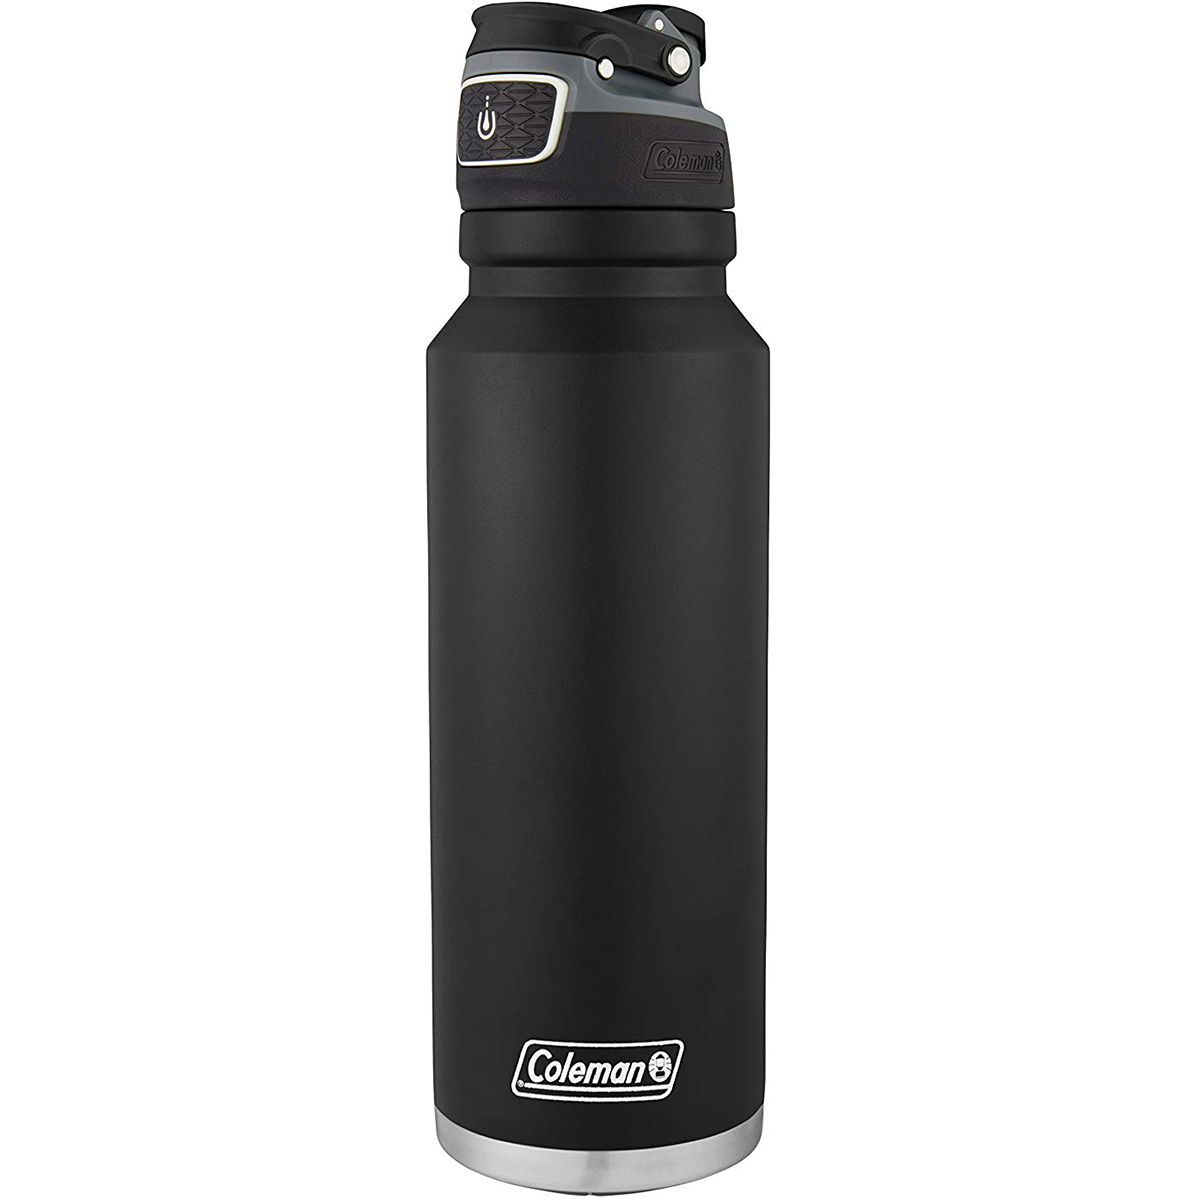 thumbnail 3 - Coleman 40 oz. Free Flow Autoseal Insulated Stainless Steel Water Bottle